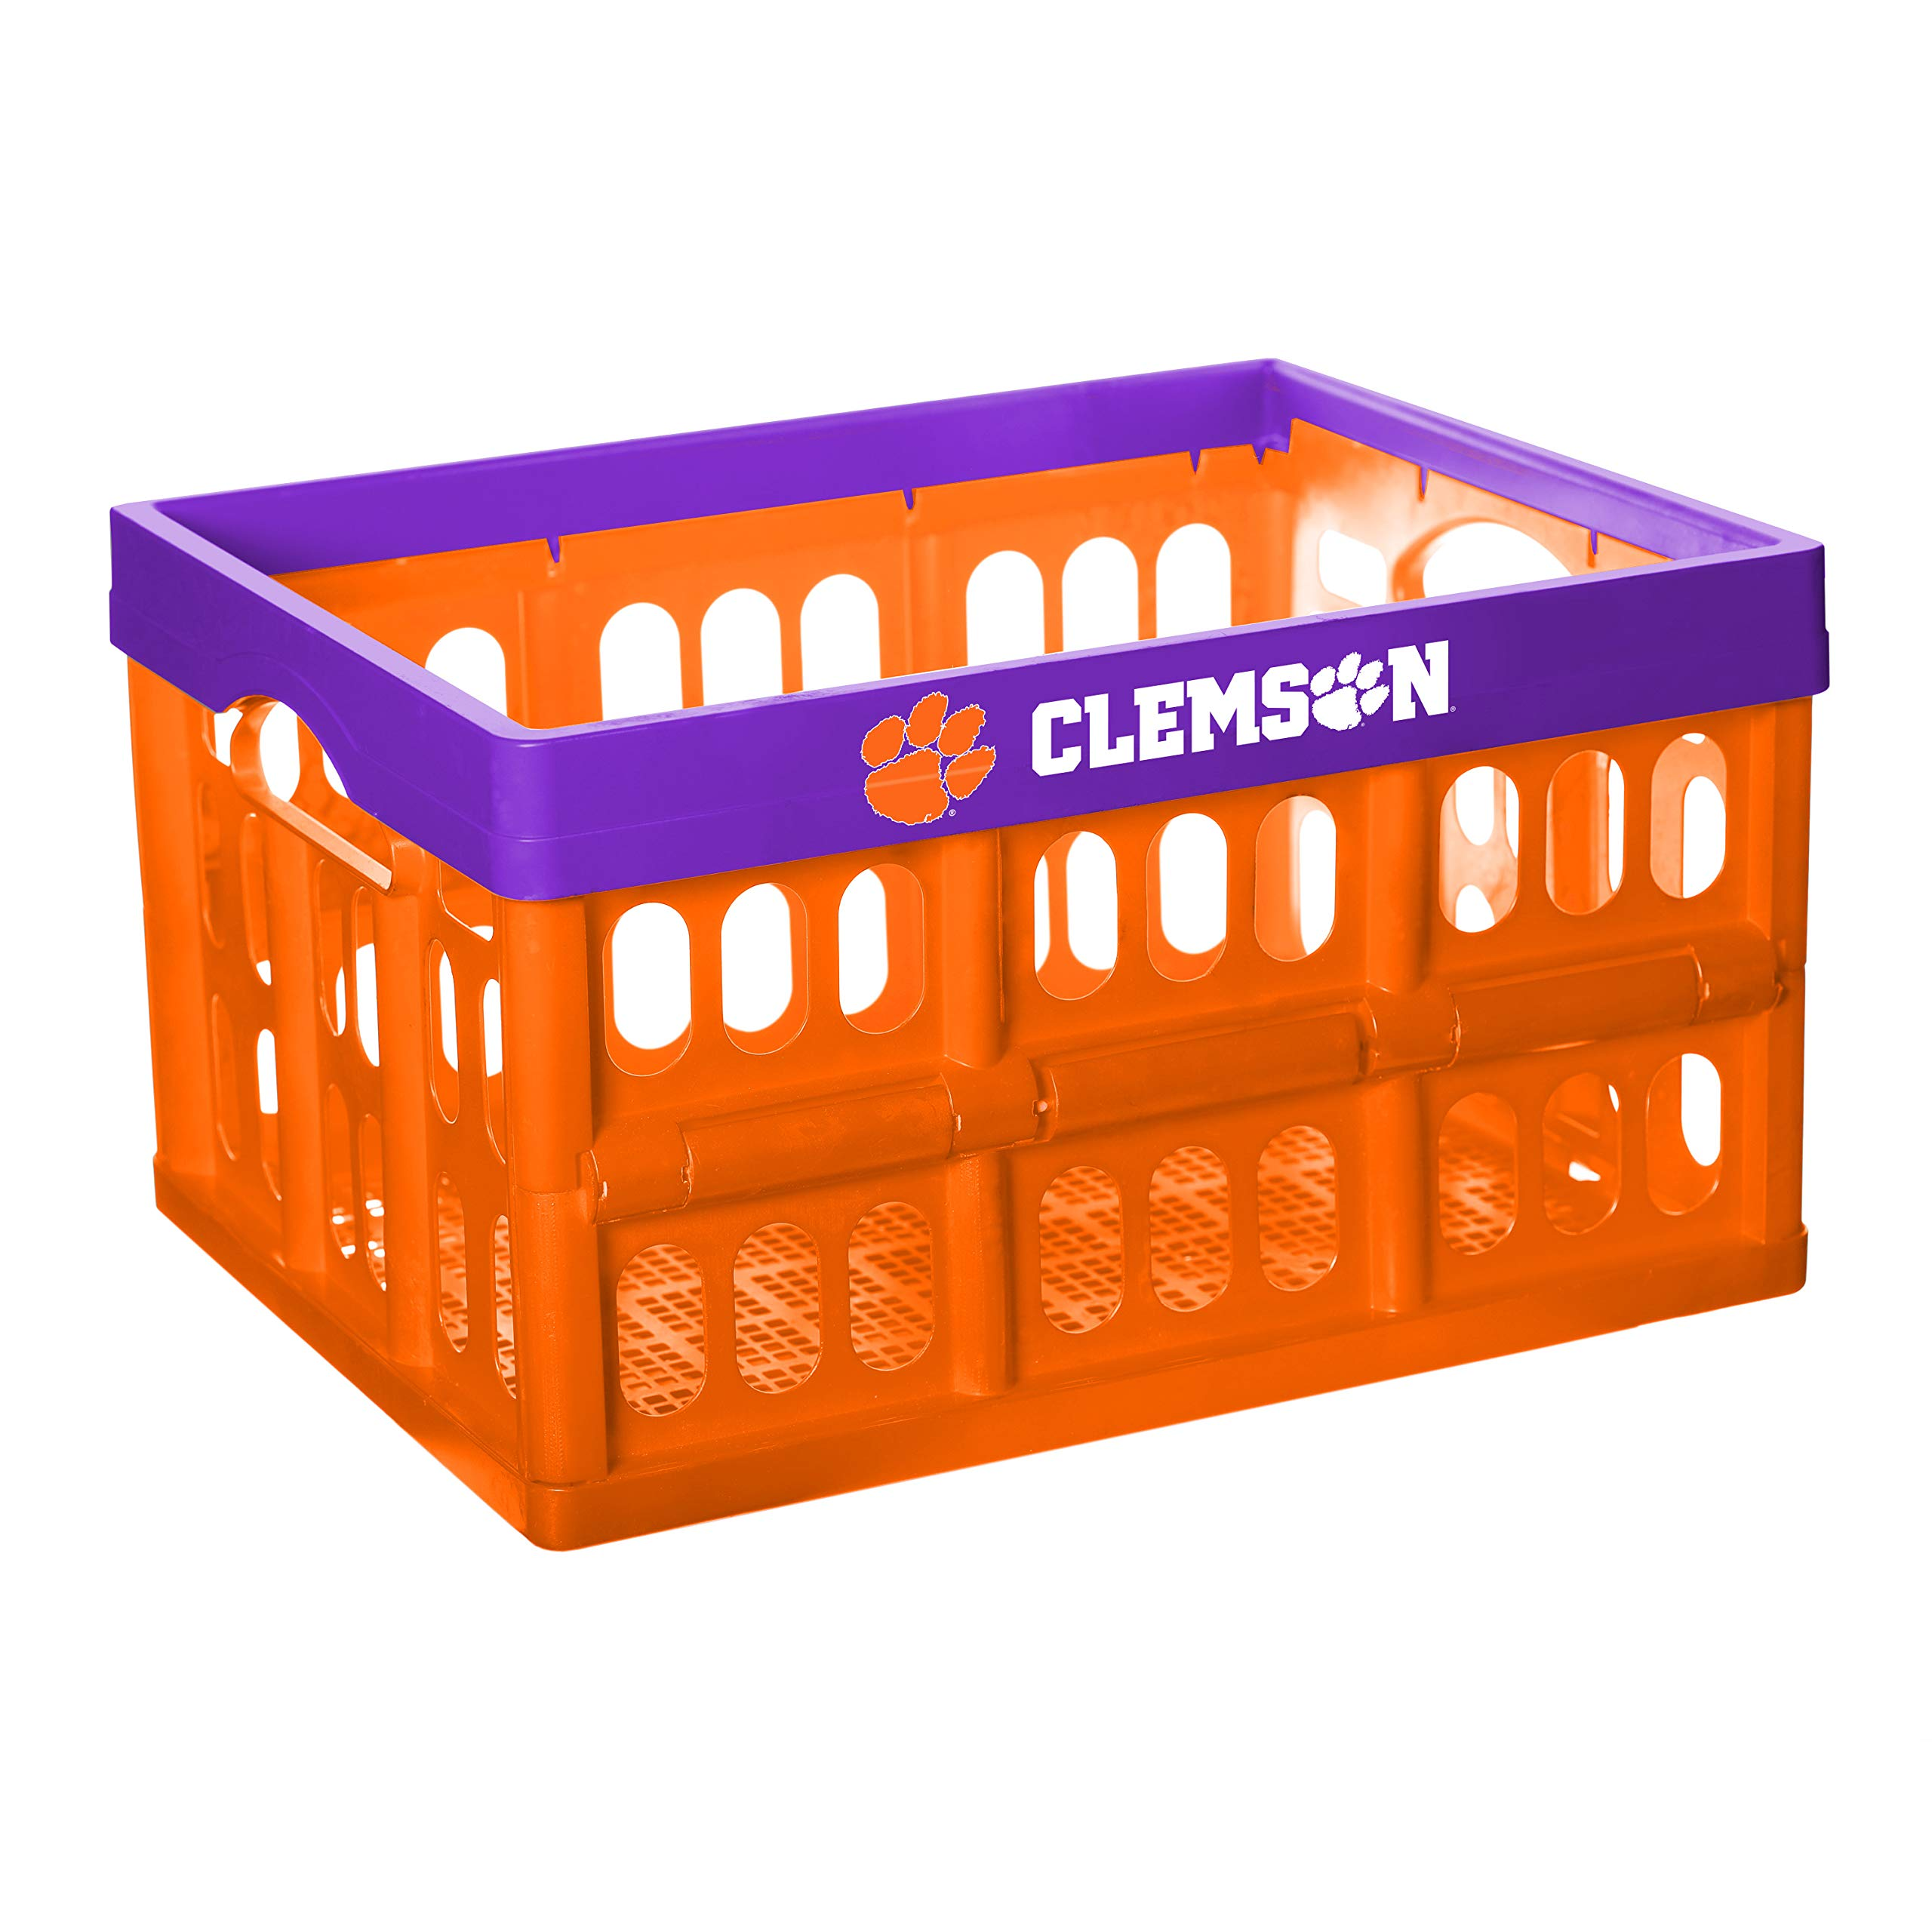 NCAA Fabrique Innovations Collapsible Crate, Clemson Tigers